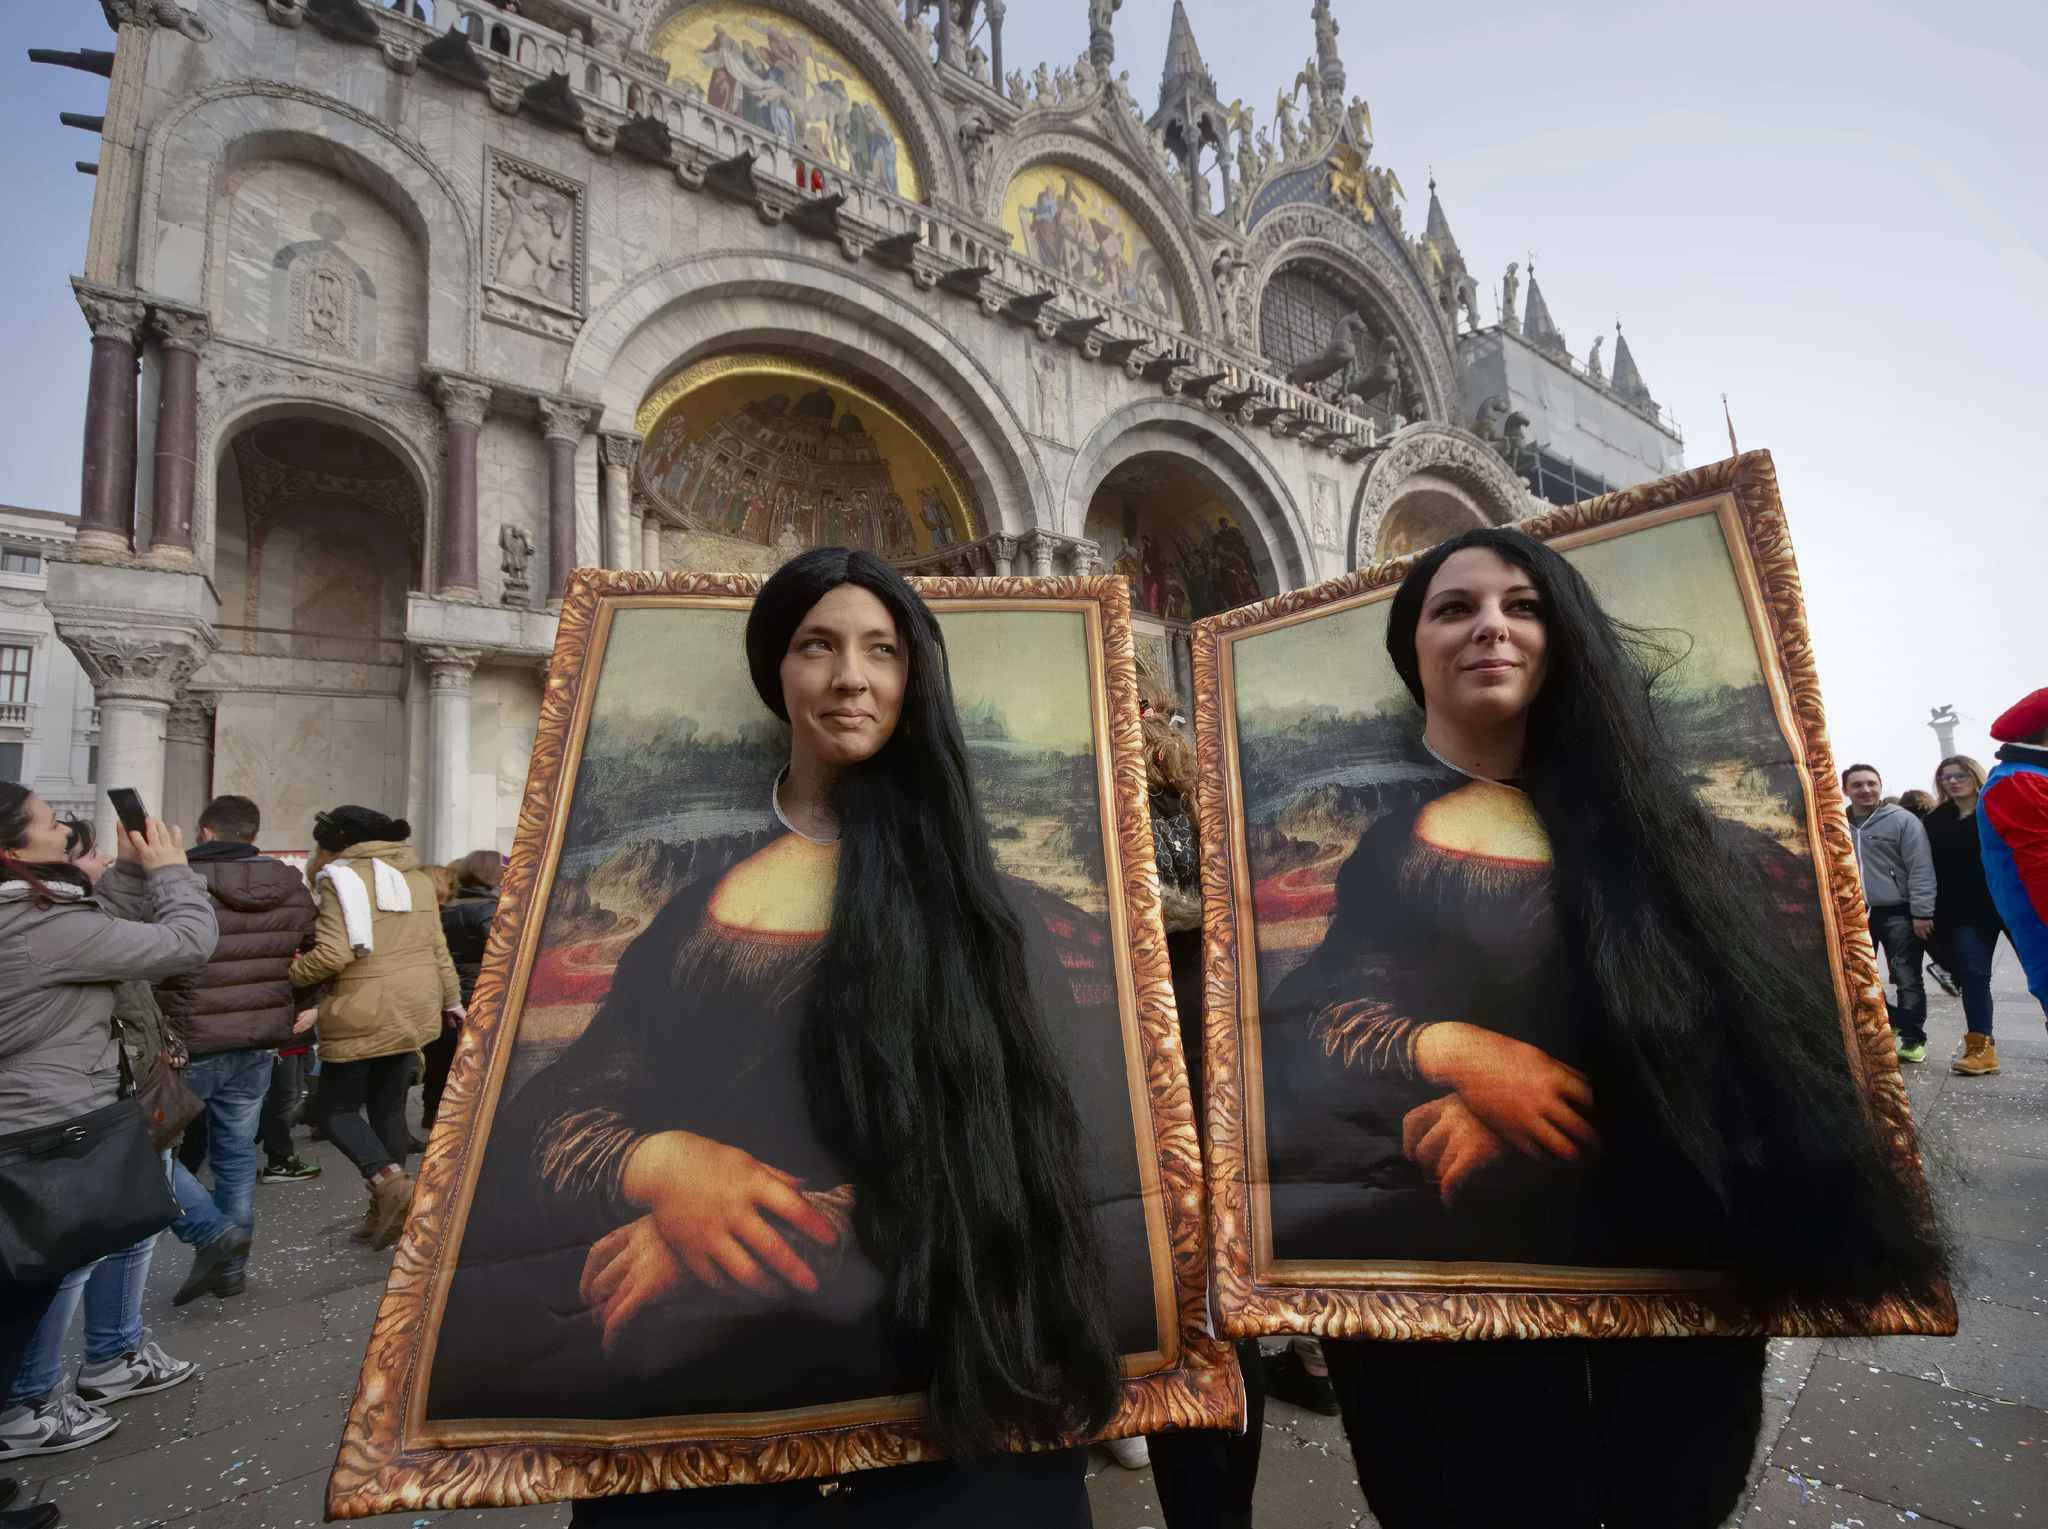 Two carnival revellers masquerade as Leonardo da Vinci's painting 'Mona Lisa' pose in St. Mark's Square in Venice, Italy, Sunday, Jan. 31, 2016. Carnival-goers in Venice are being asked by police to momentarily lift their masks as part of new anti-terrorism measures for the annual festivities. (AP Photo/Domenico Stinellis)/XDS116/211920918240/1602010028